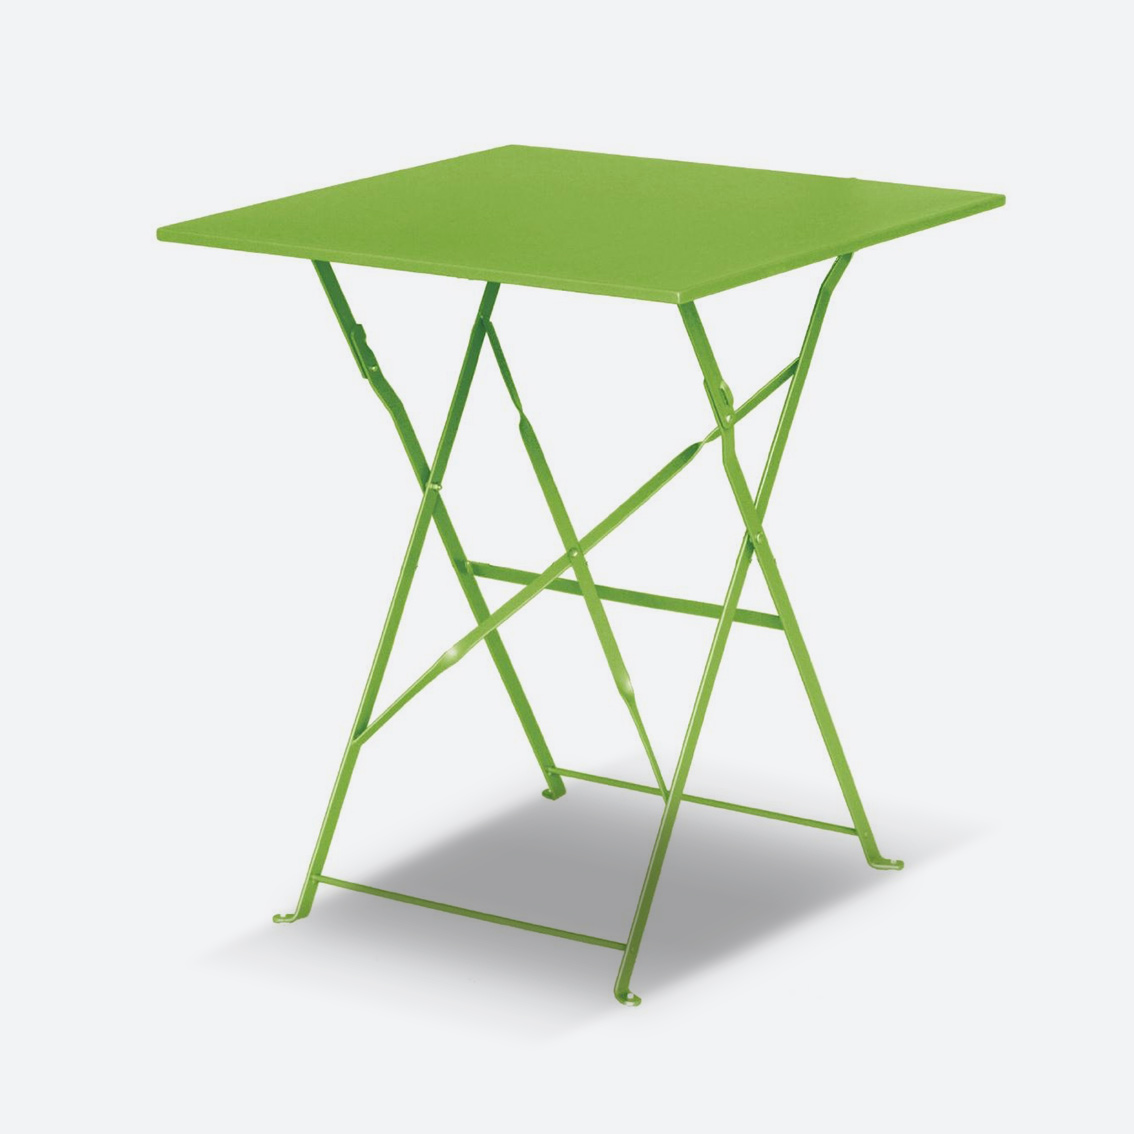 square-garden-table-green